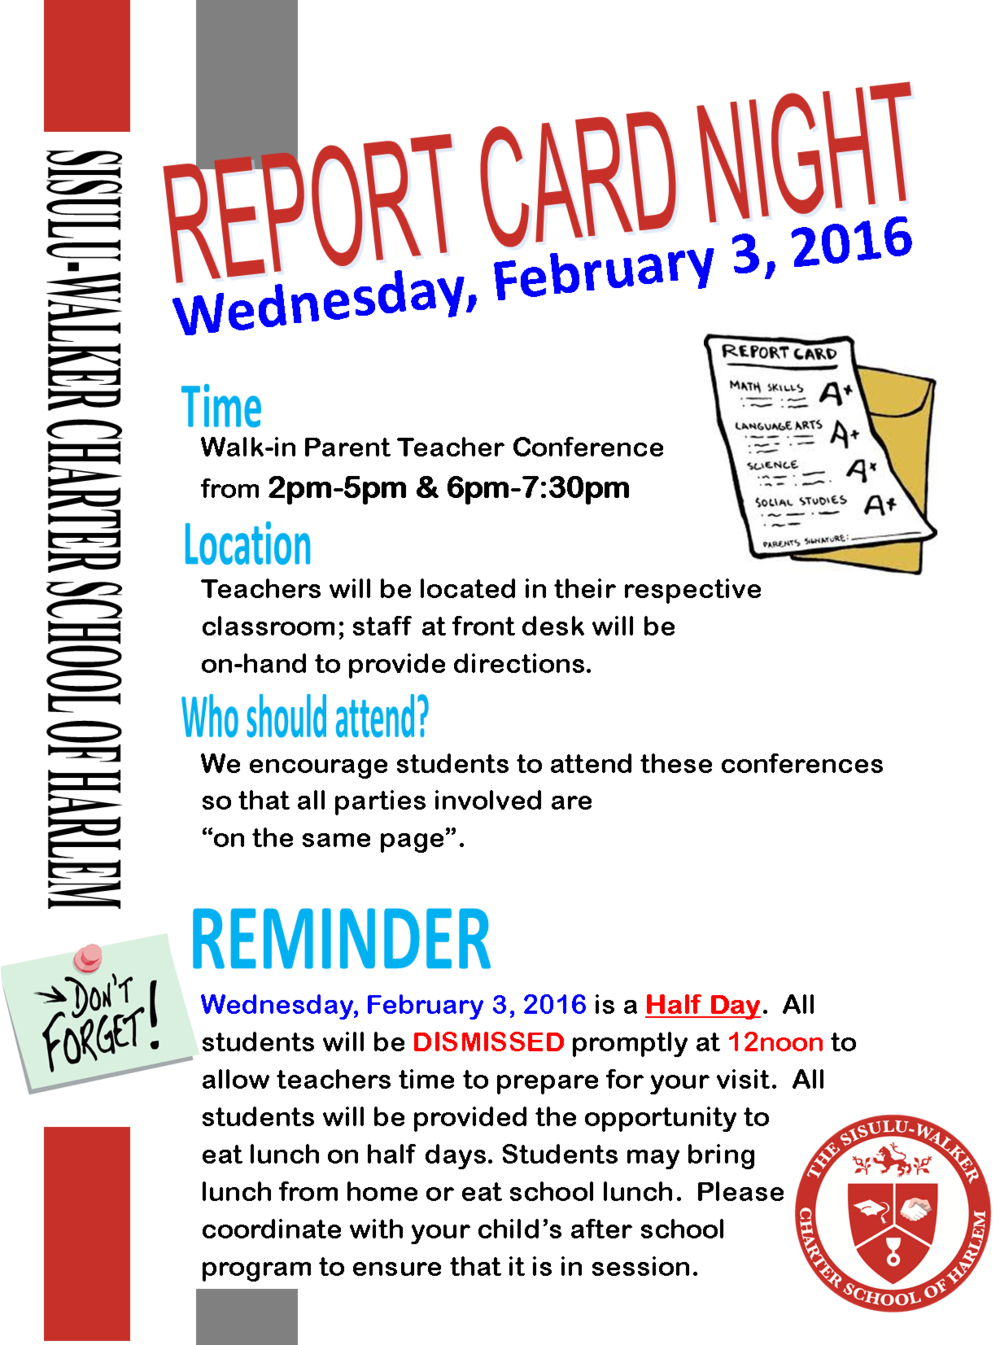 Report Card Night2016.png